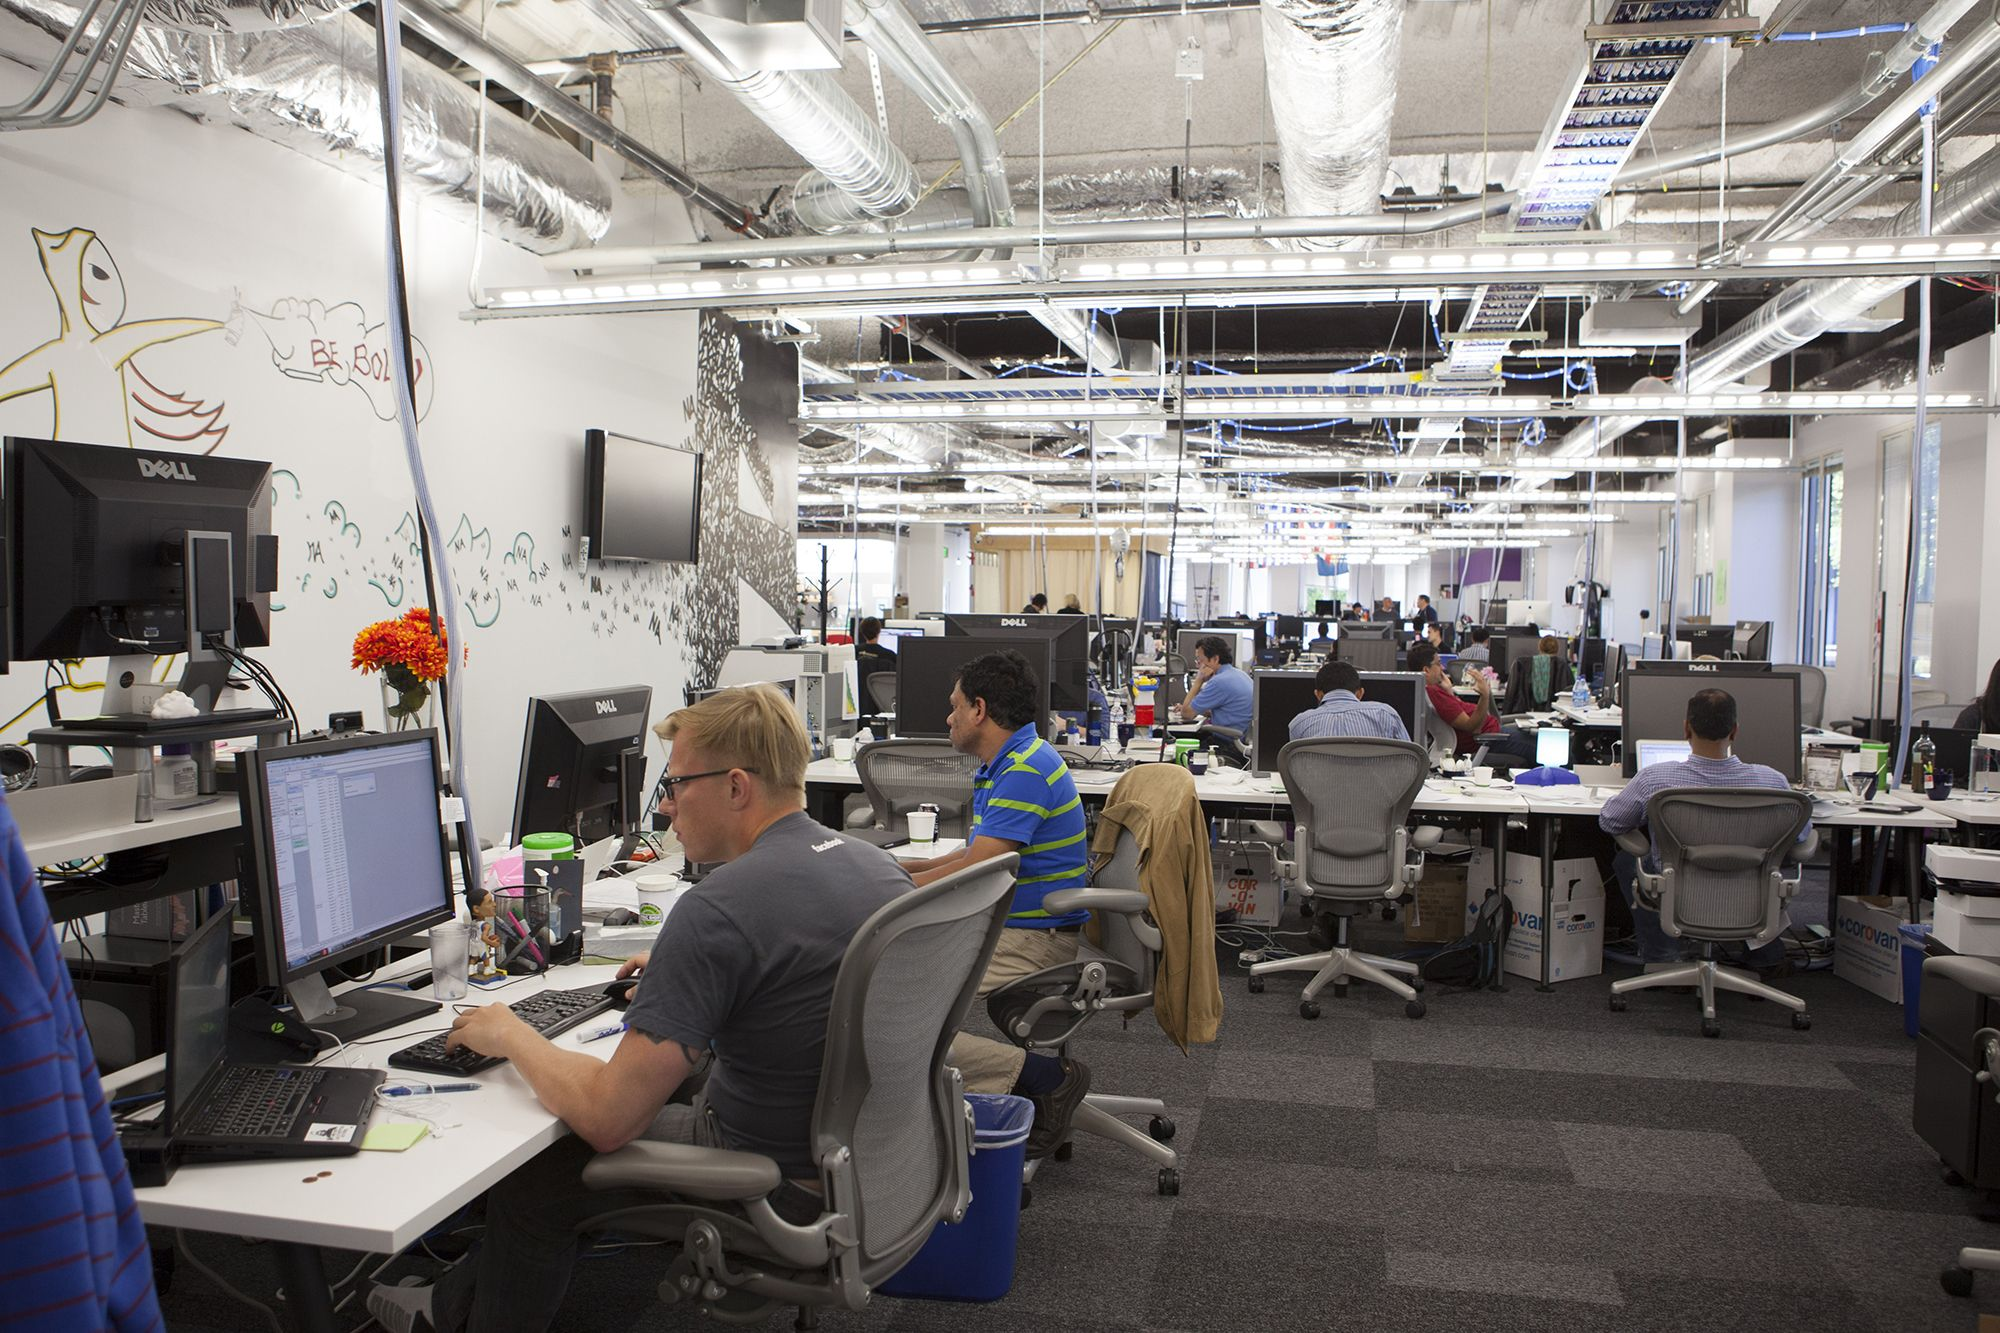 facebook office usa. Facebook Office Usa. Scenes Of Daily Work And Life At , Inc. Usa A